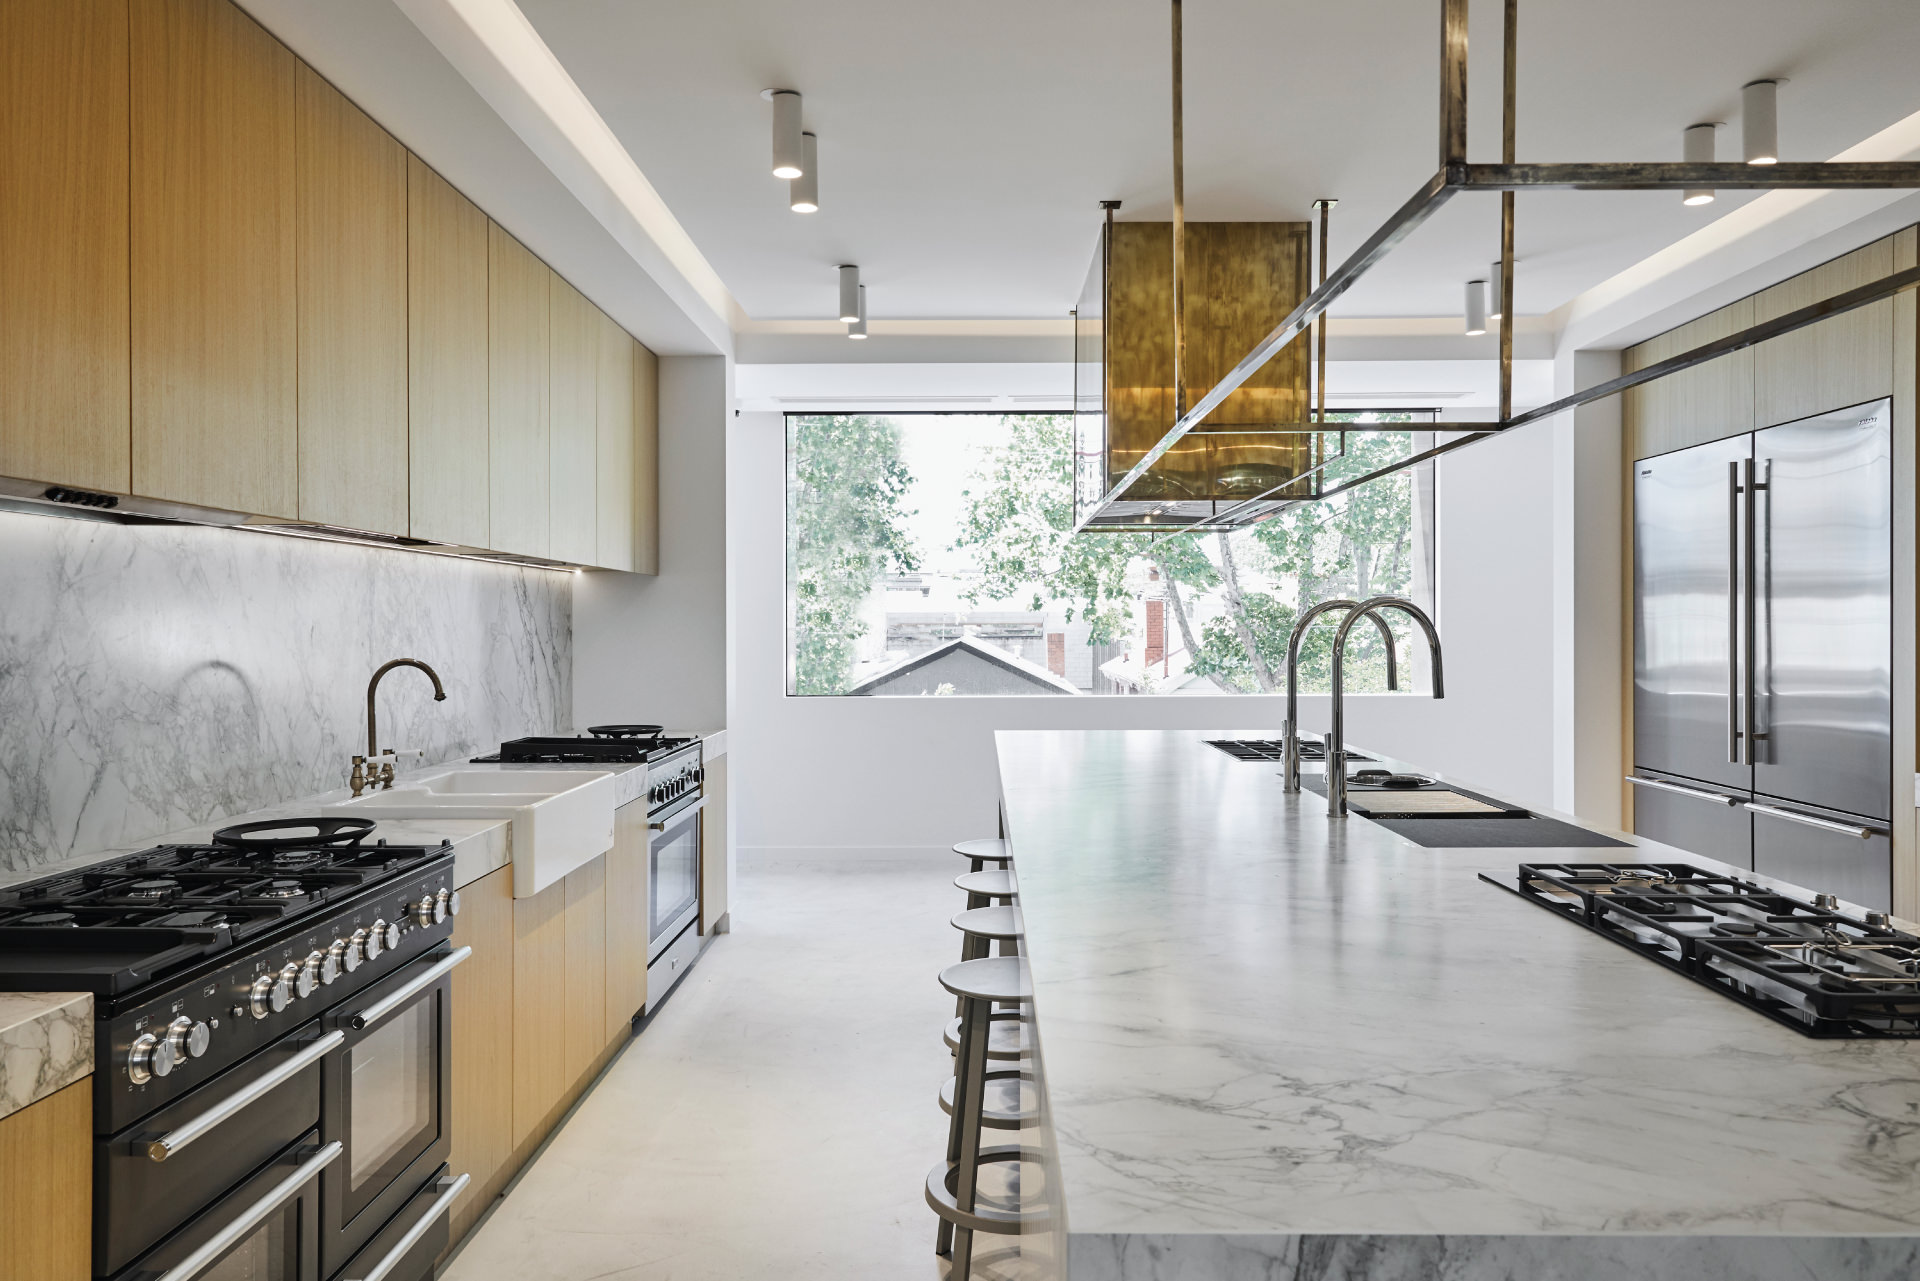 Cera Stribley Architecture Interior Design Winning Appliances Richmond interior wooden marble kitchen